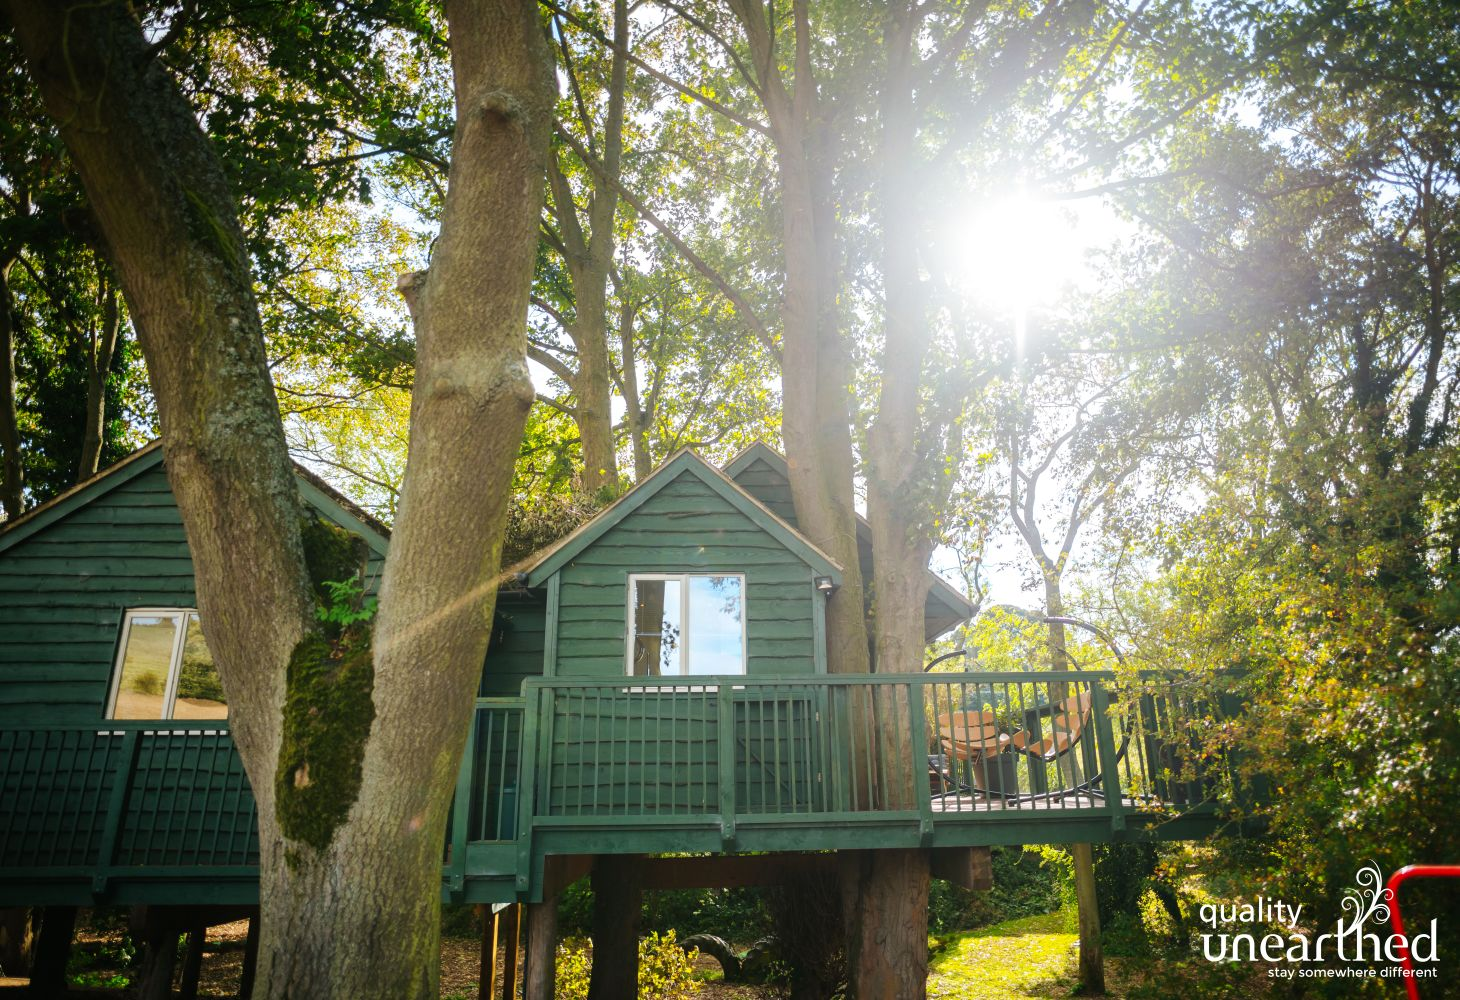 Quirky swinging seats on the treehouse for relaxing de-stress holidays